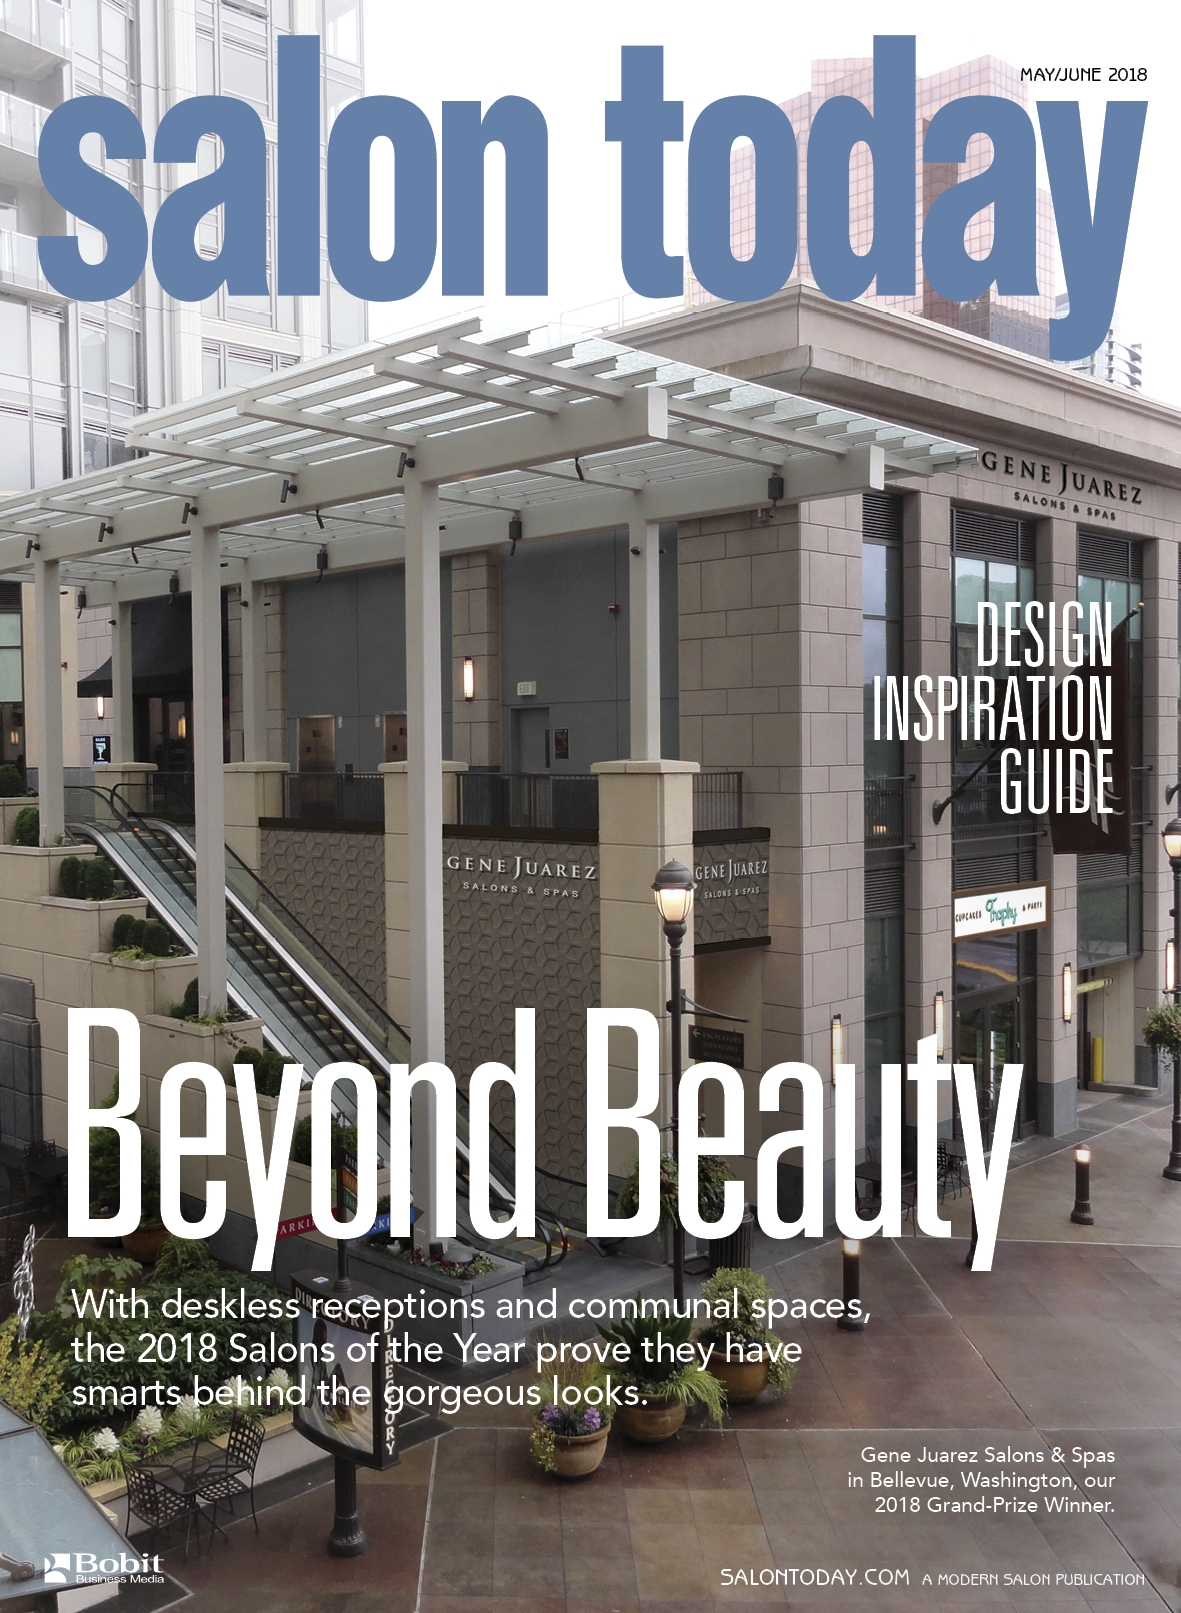 Announcing the 2018 Salons of the Year